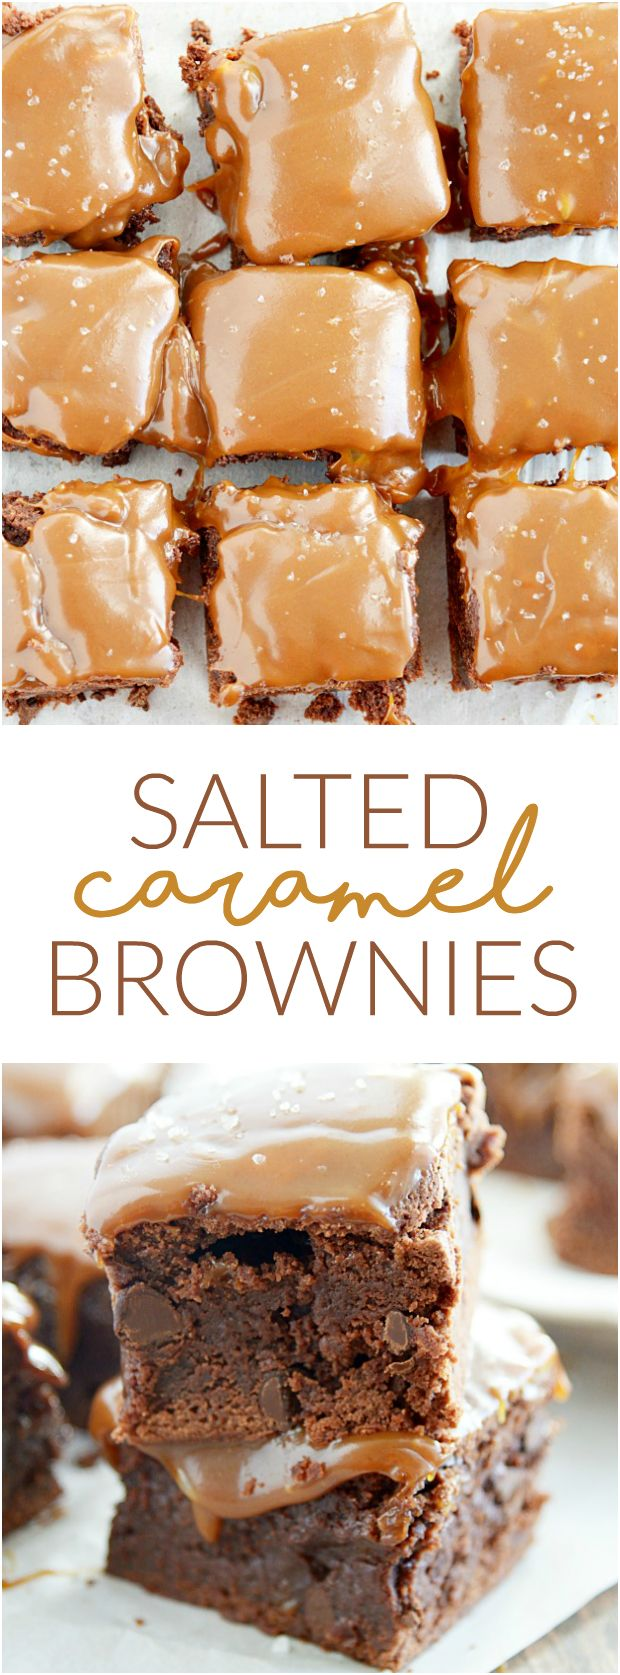 Salted Caramel Brownies are easier than you think to make and are so delicious…